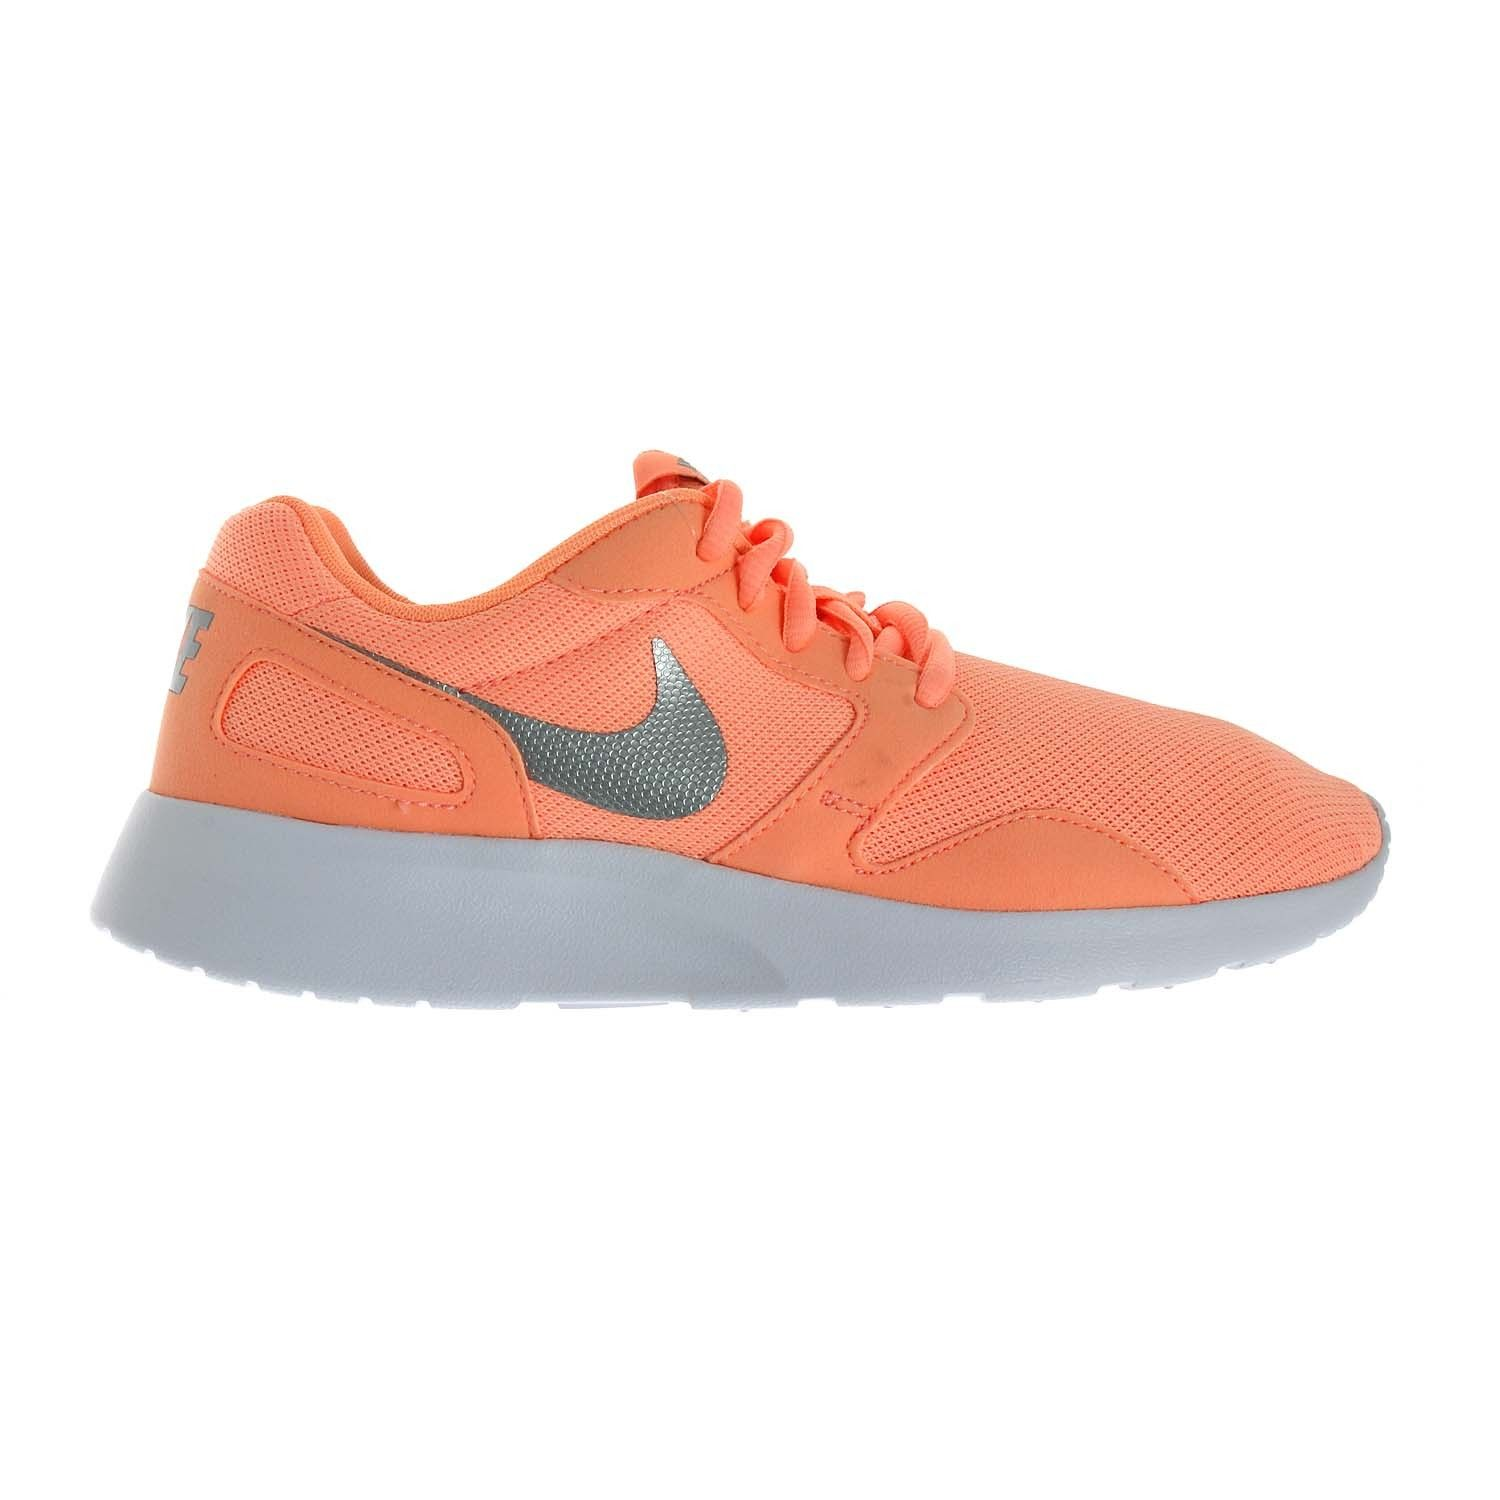 Explore Outfit Ideas, Footwear, and more! Nike Kaishi (654845-801)